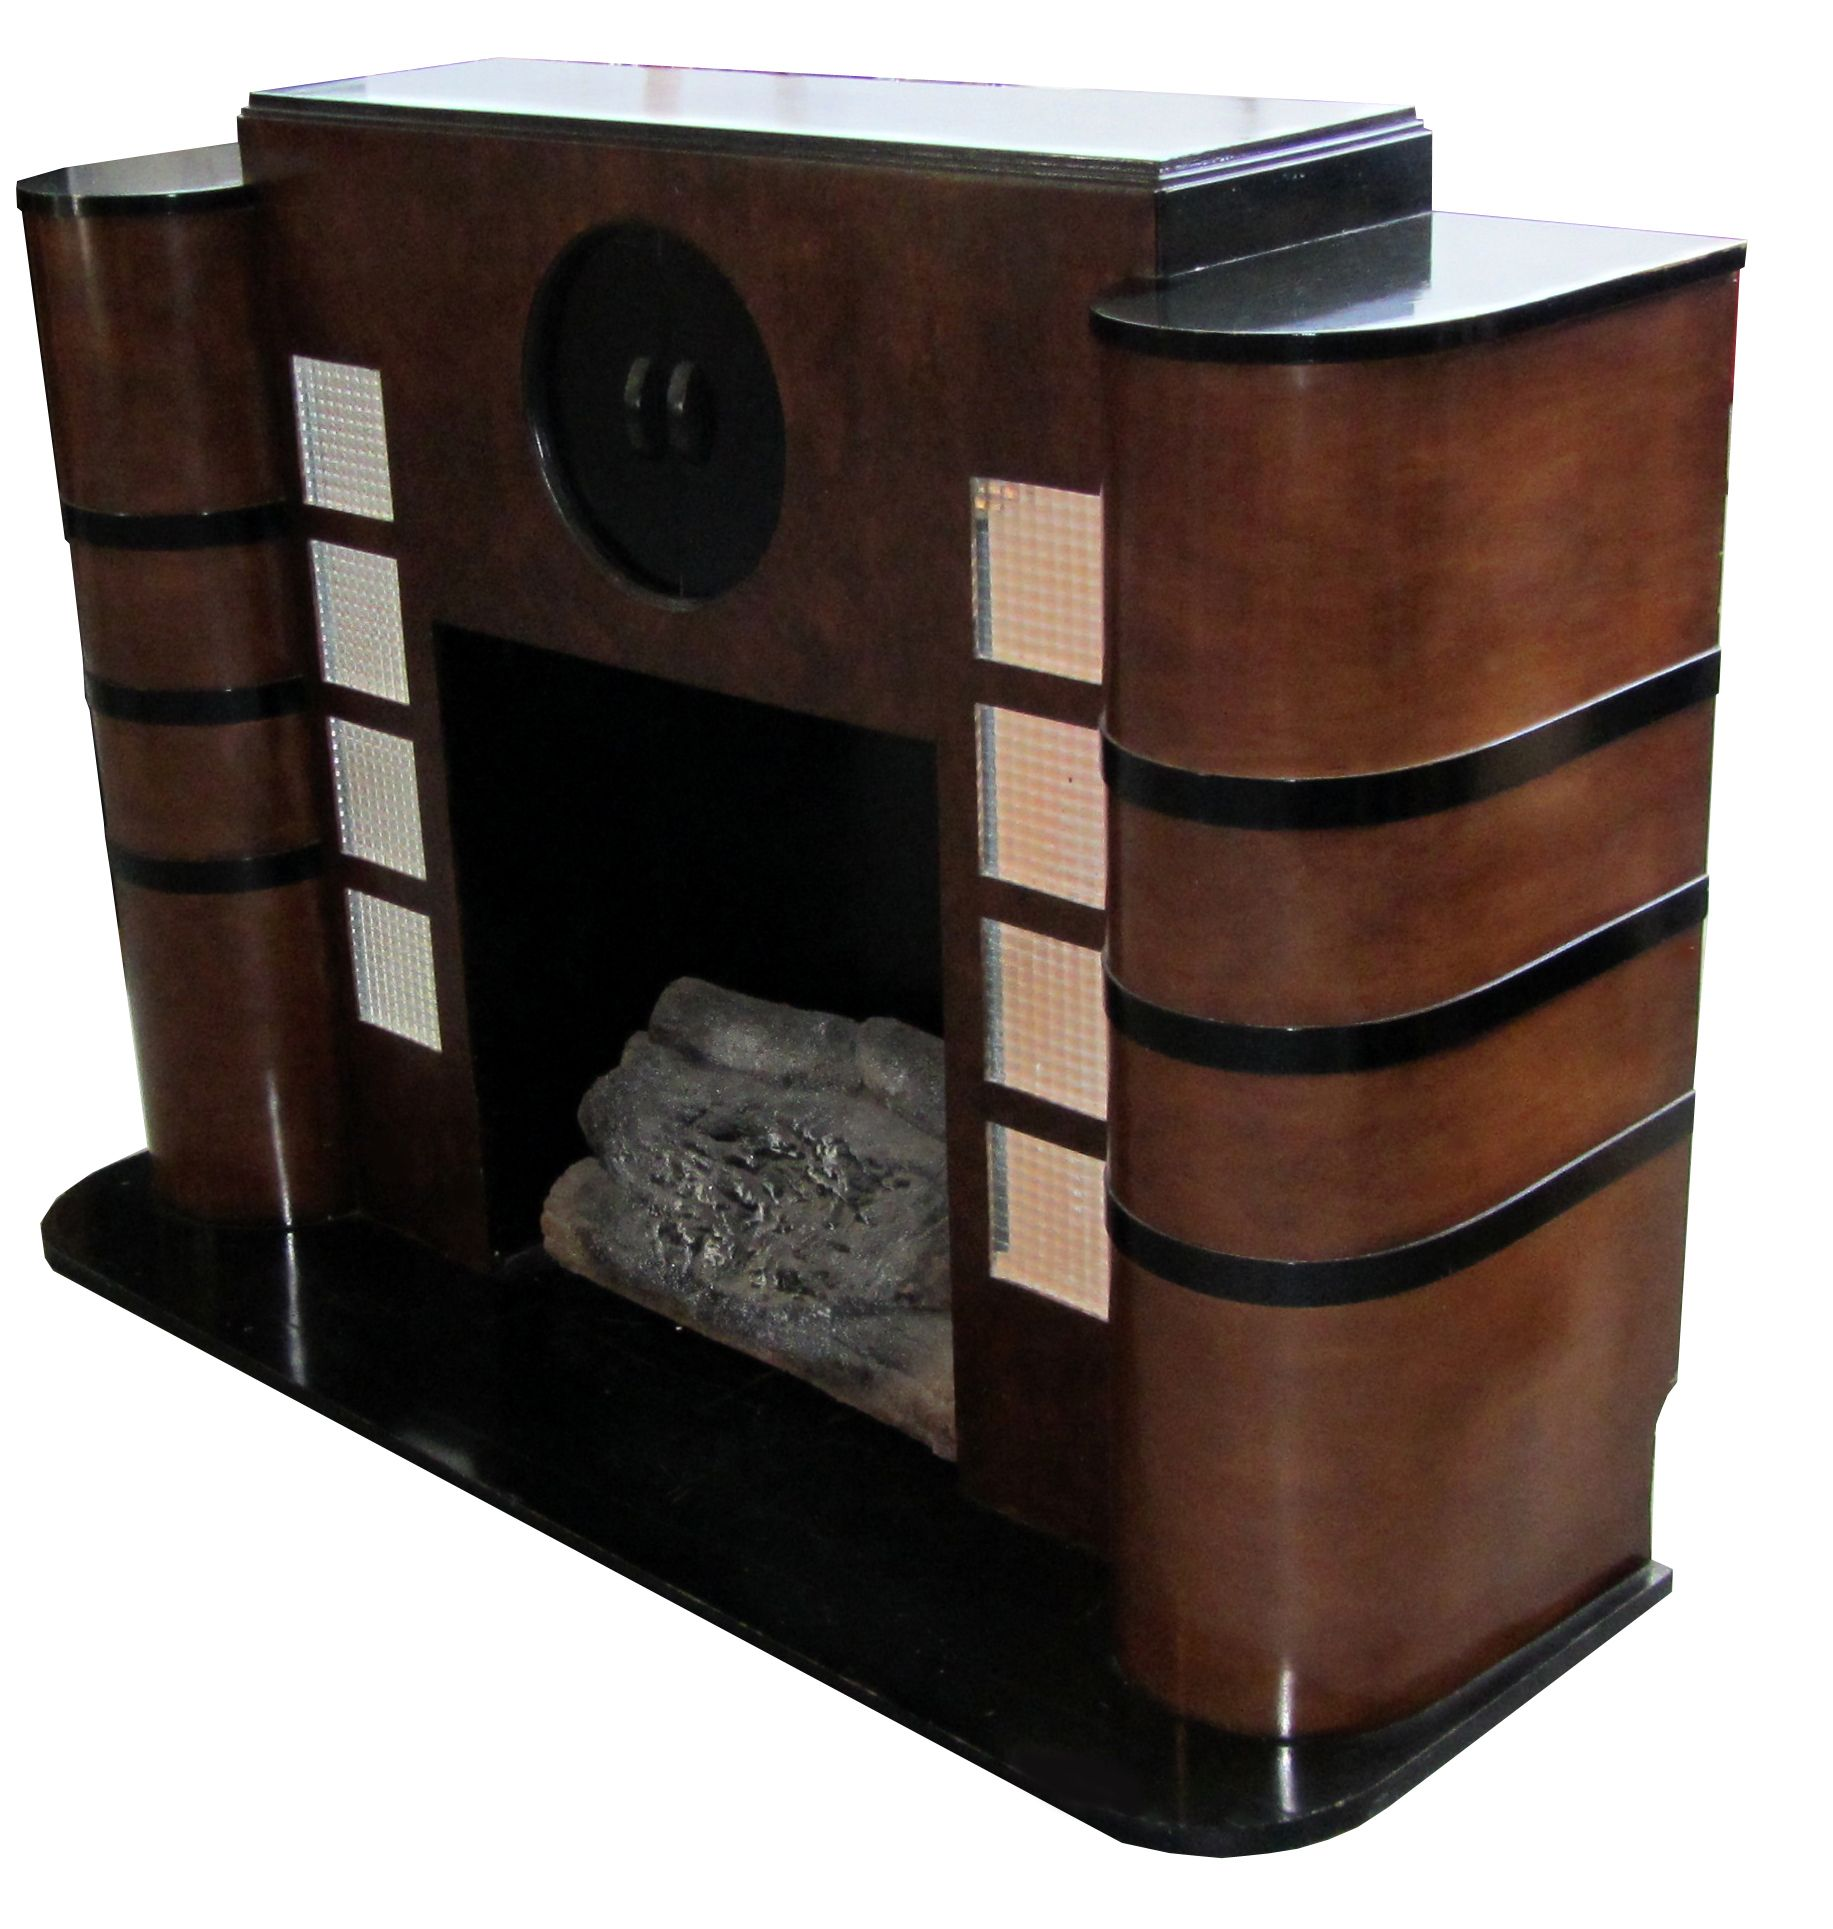 Modern art deco furniture - Cool American Art Deco Streamline Electric Fireplace Idea For Refinishing My Center With Art Deco Furniture